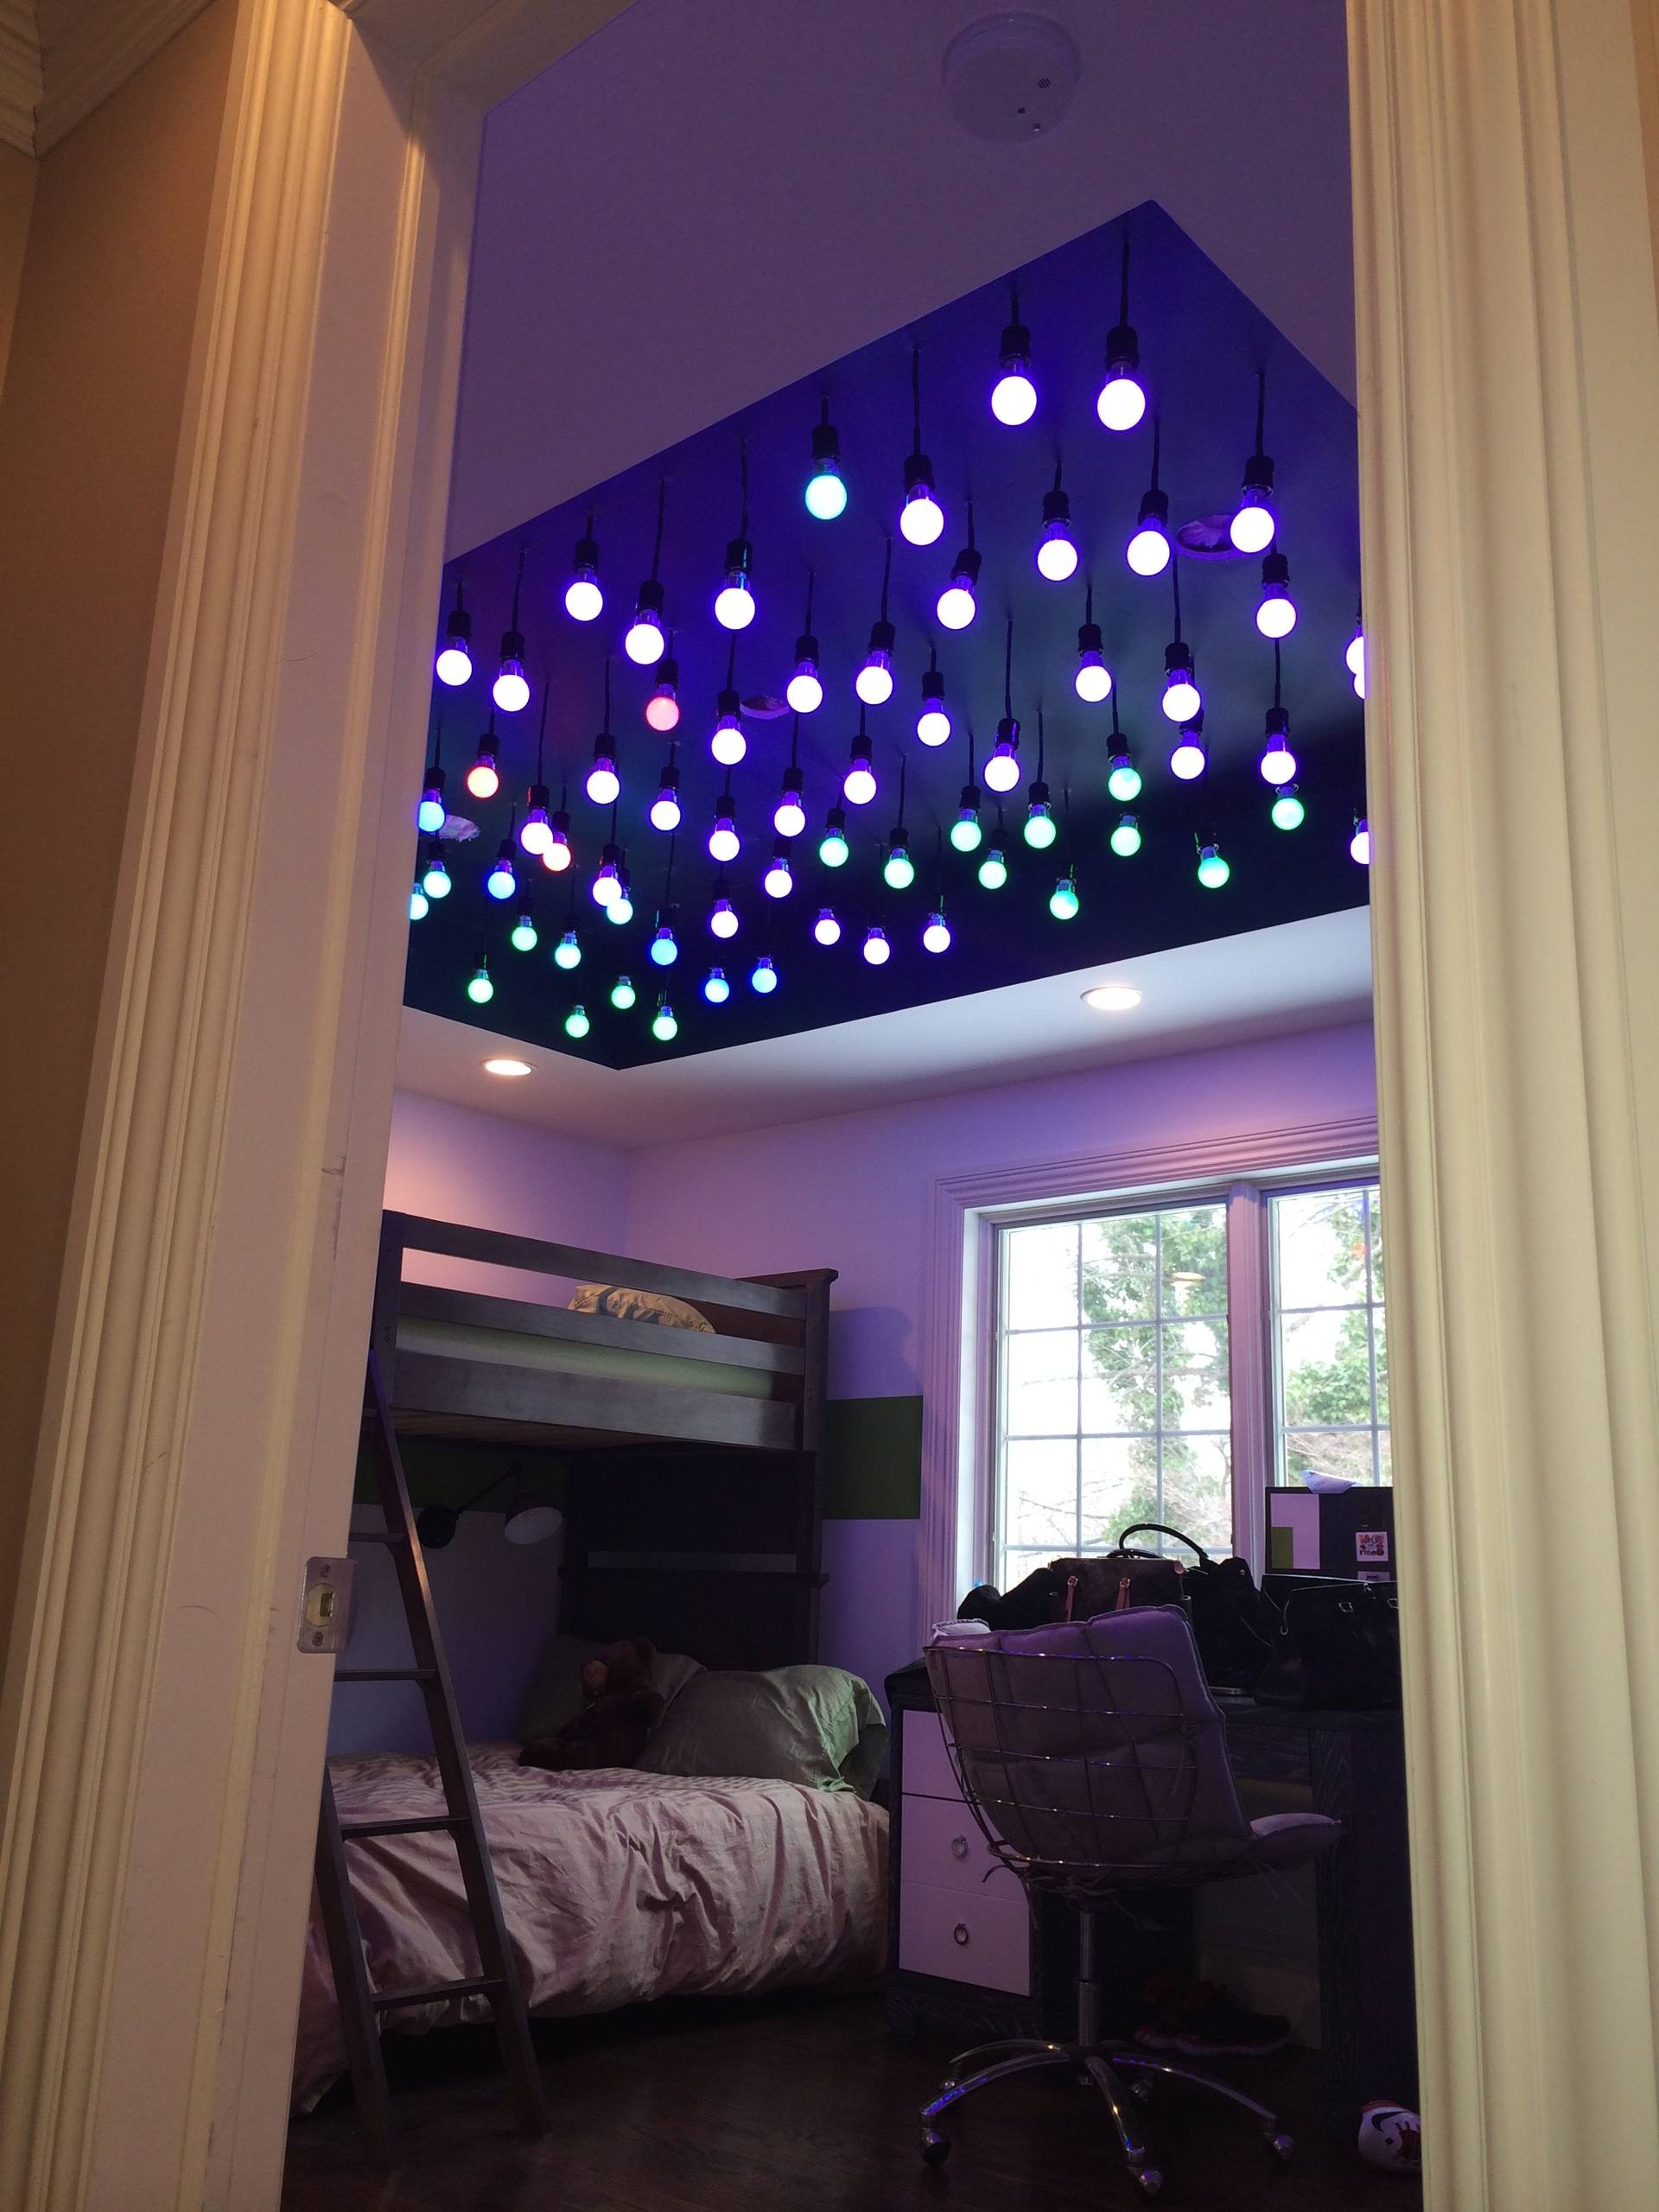 75 Beautiful Purple Bedroom Pictures Ideas February 2021 Houzz